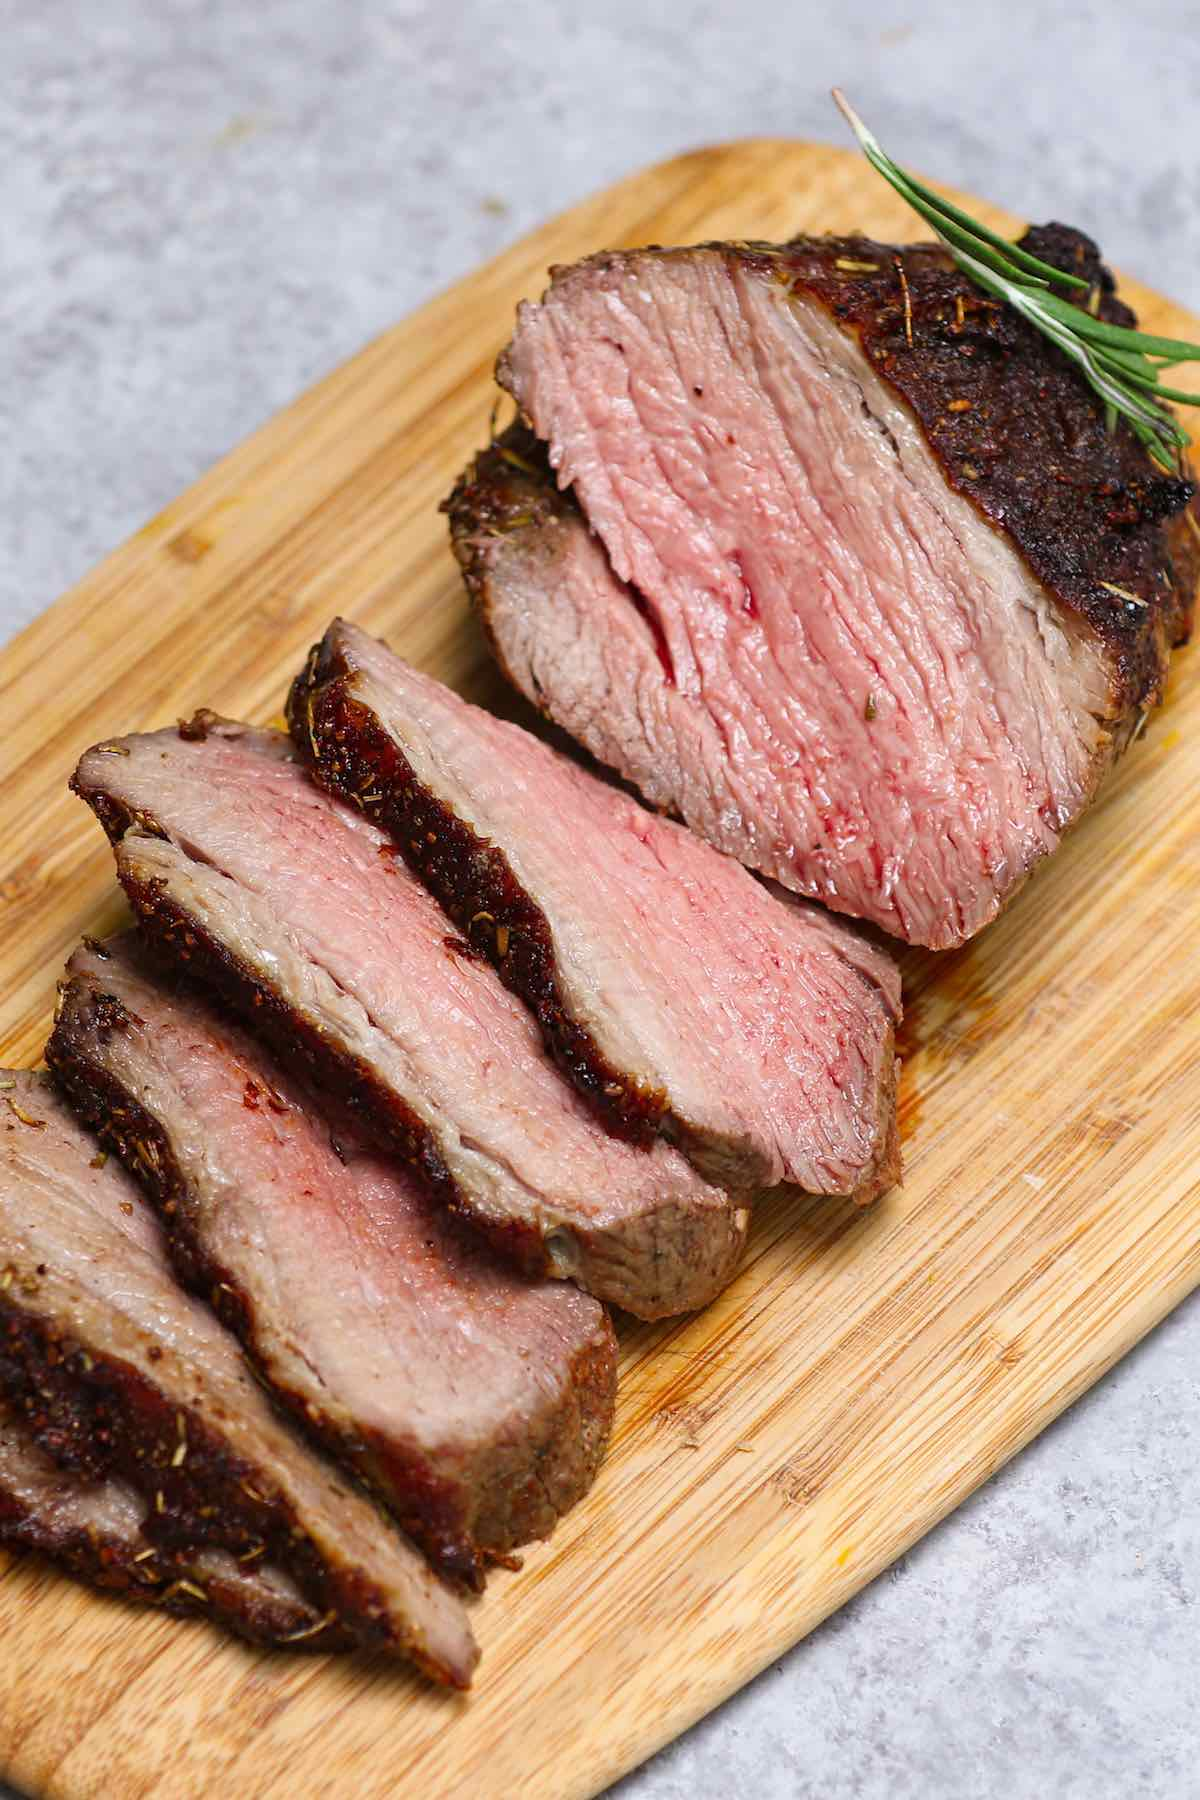 Slices of sirloin roast on a carving board showing medium doneness with a pale pink interior